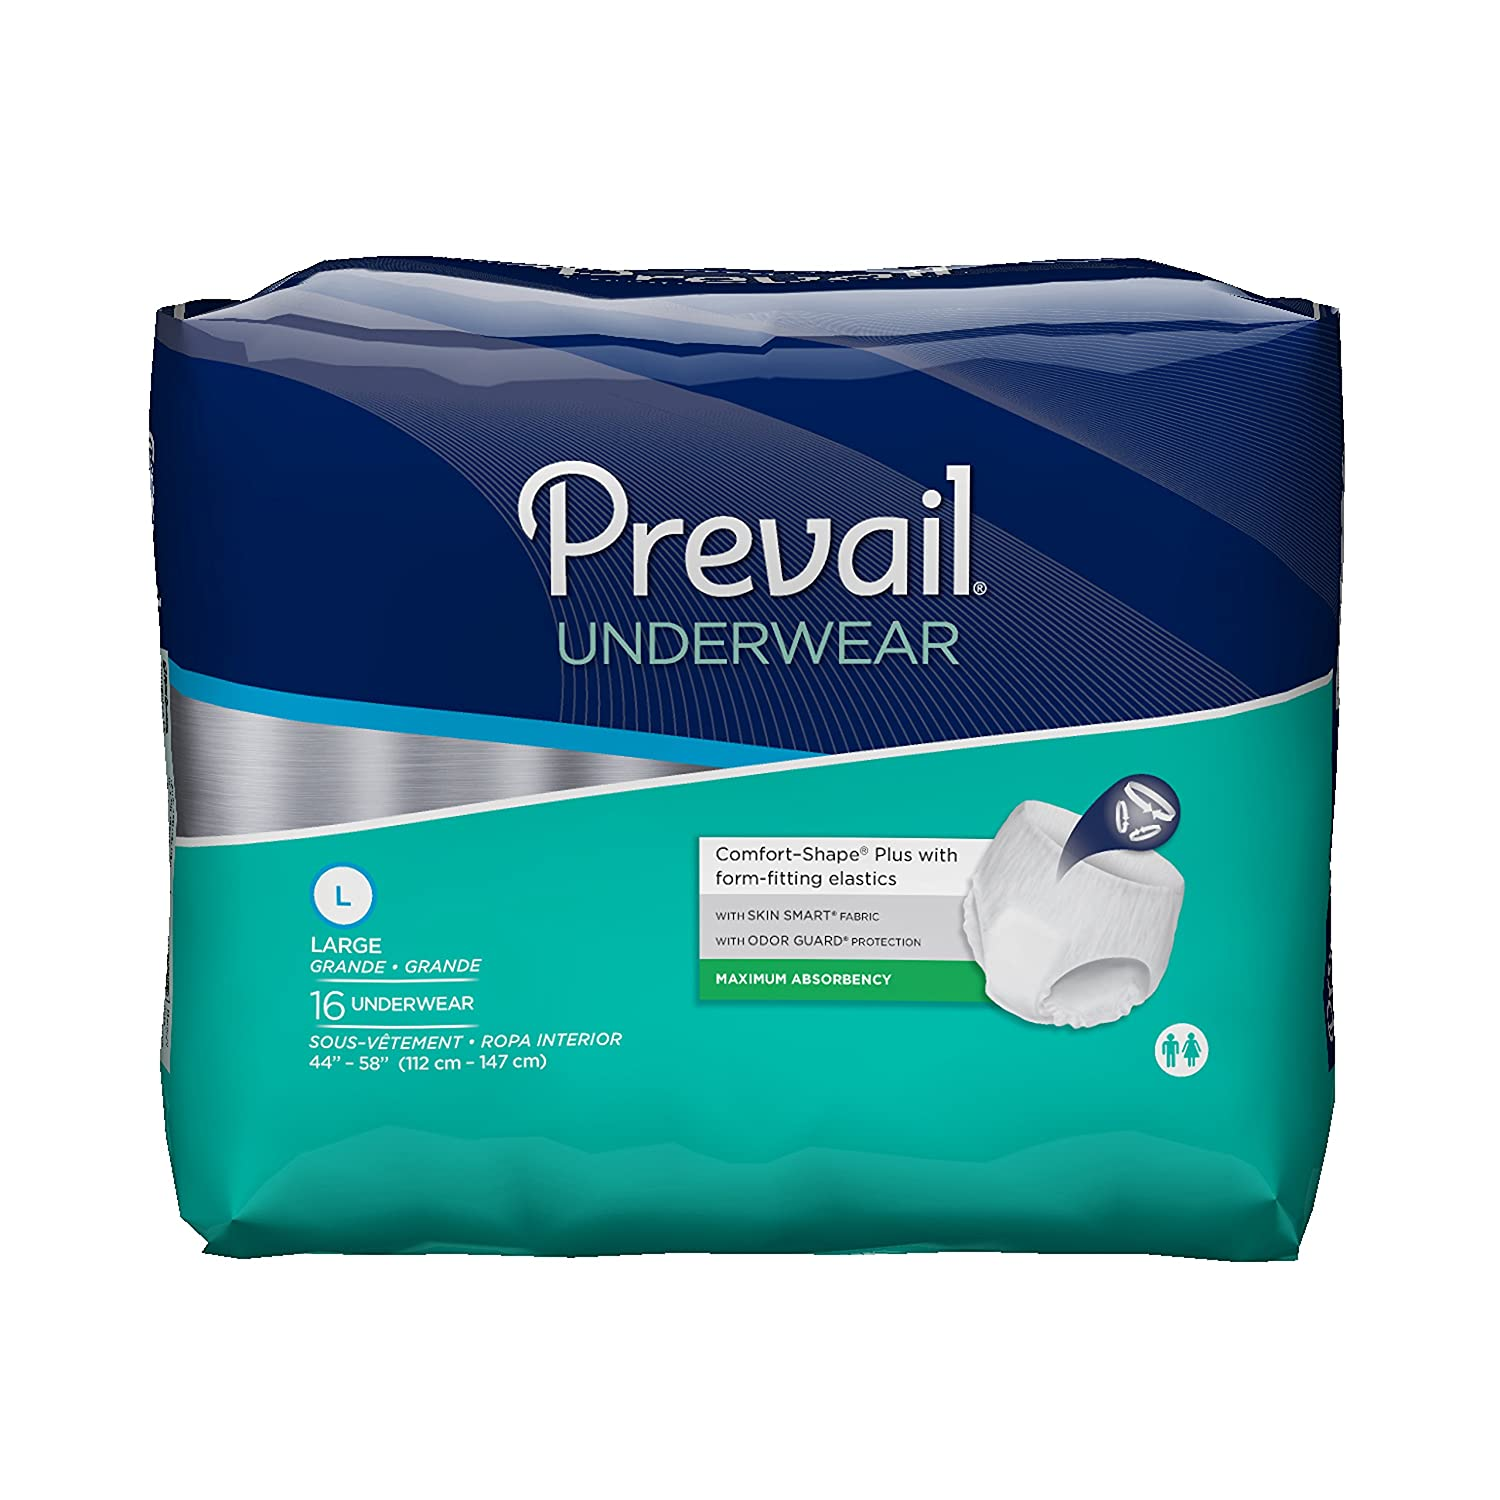 Amazon.com: Prevail Maximum Absorbency Incontinence Underwear, Large, 16-Count (Pack of 4): Health & Personal Care